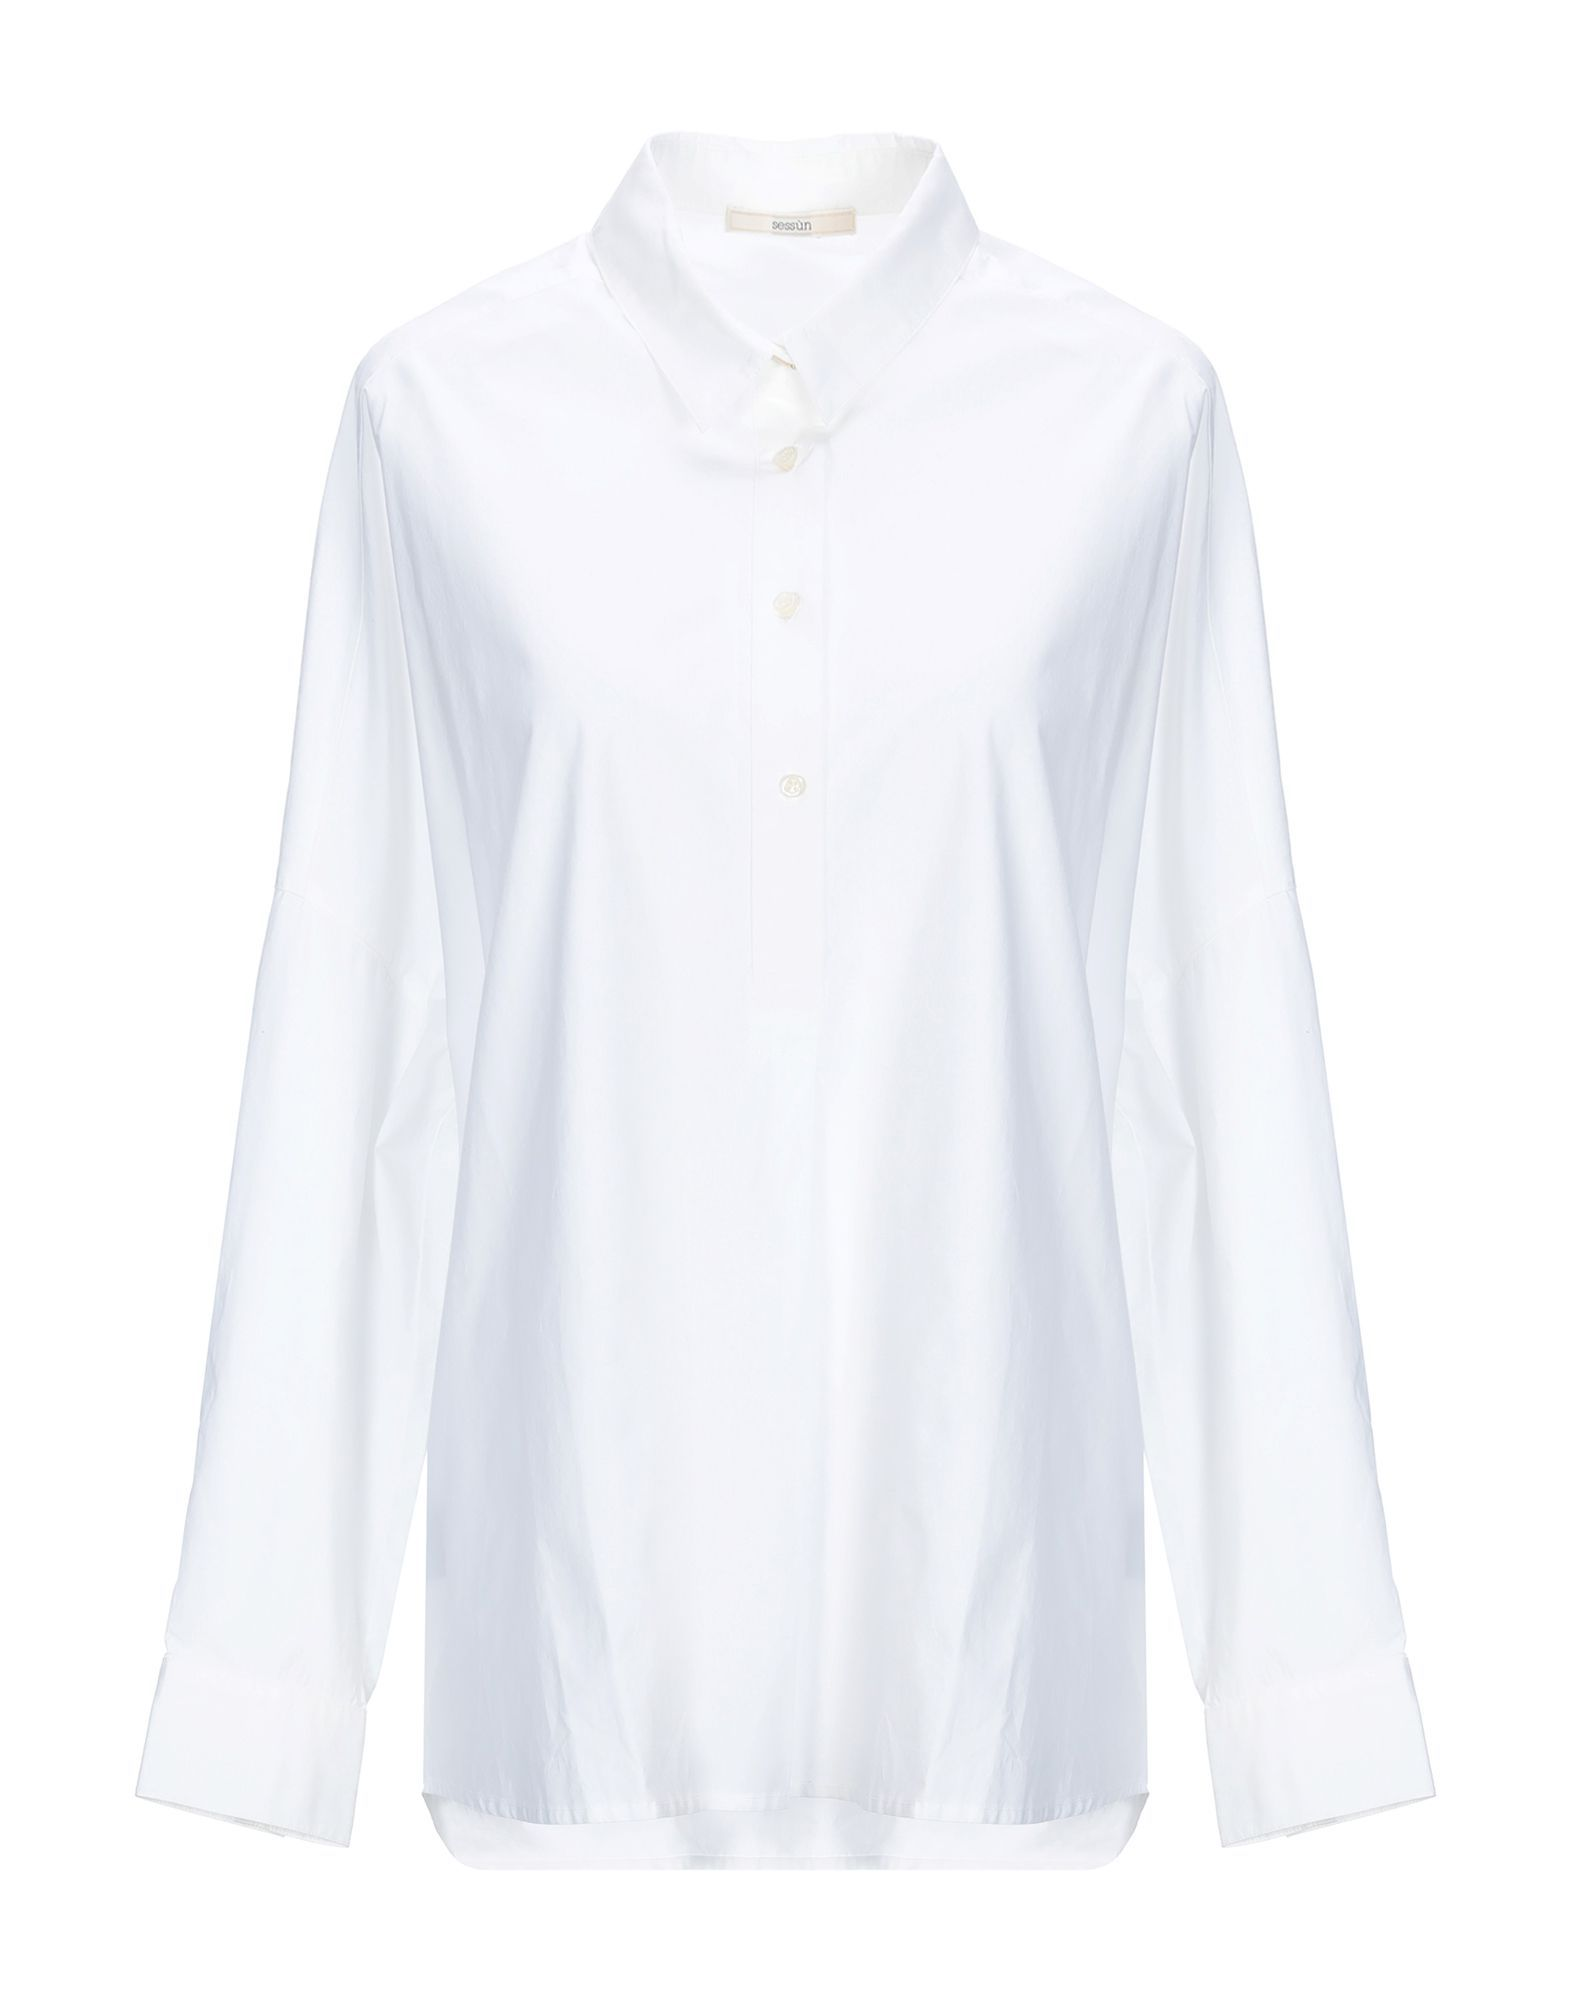 Sessun White Cotton Shirt